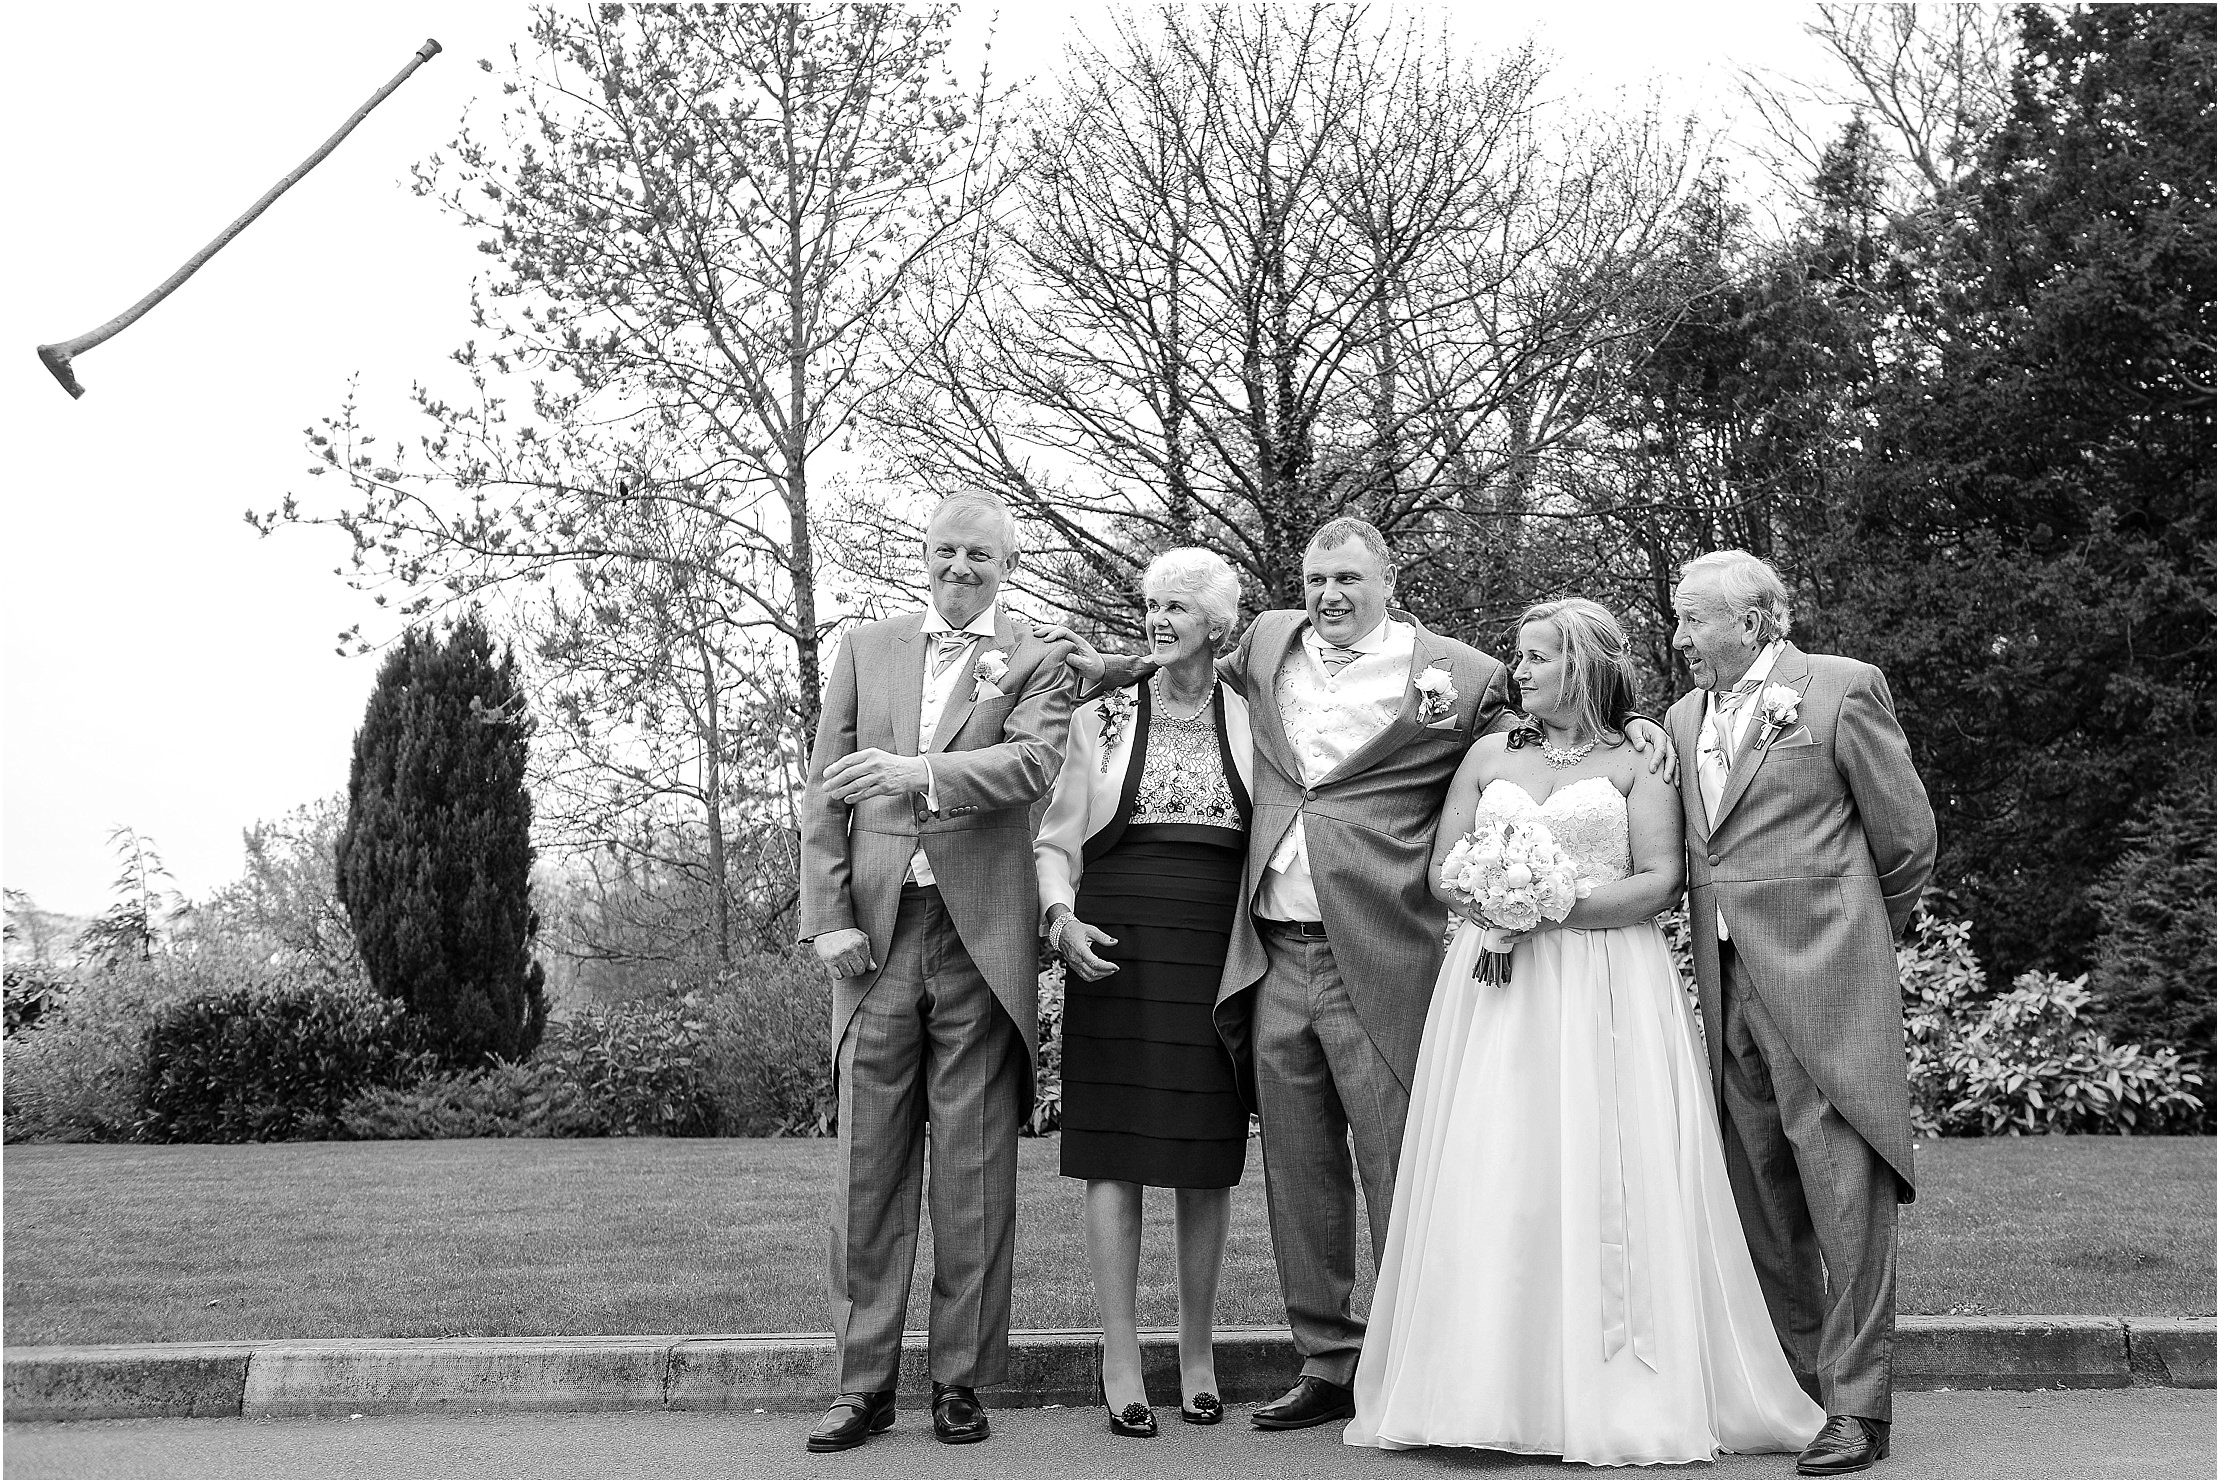 dan-wootton-wedding-photography-2015 - 008.jpg